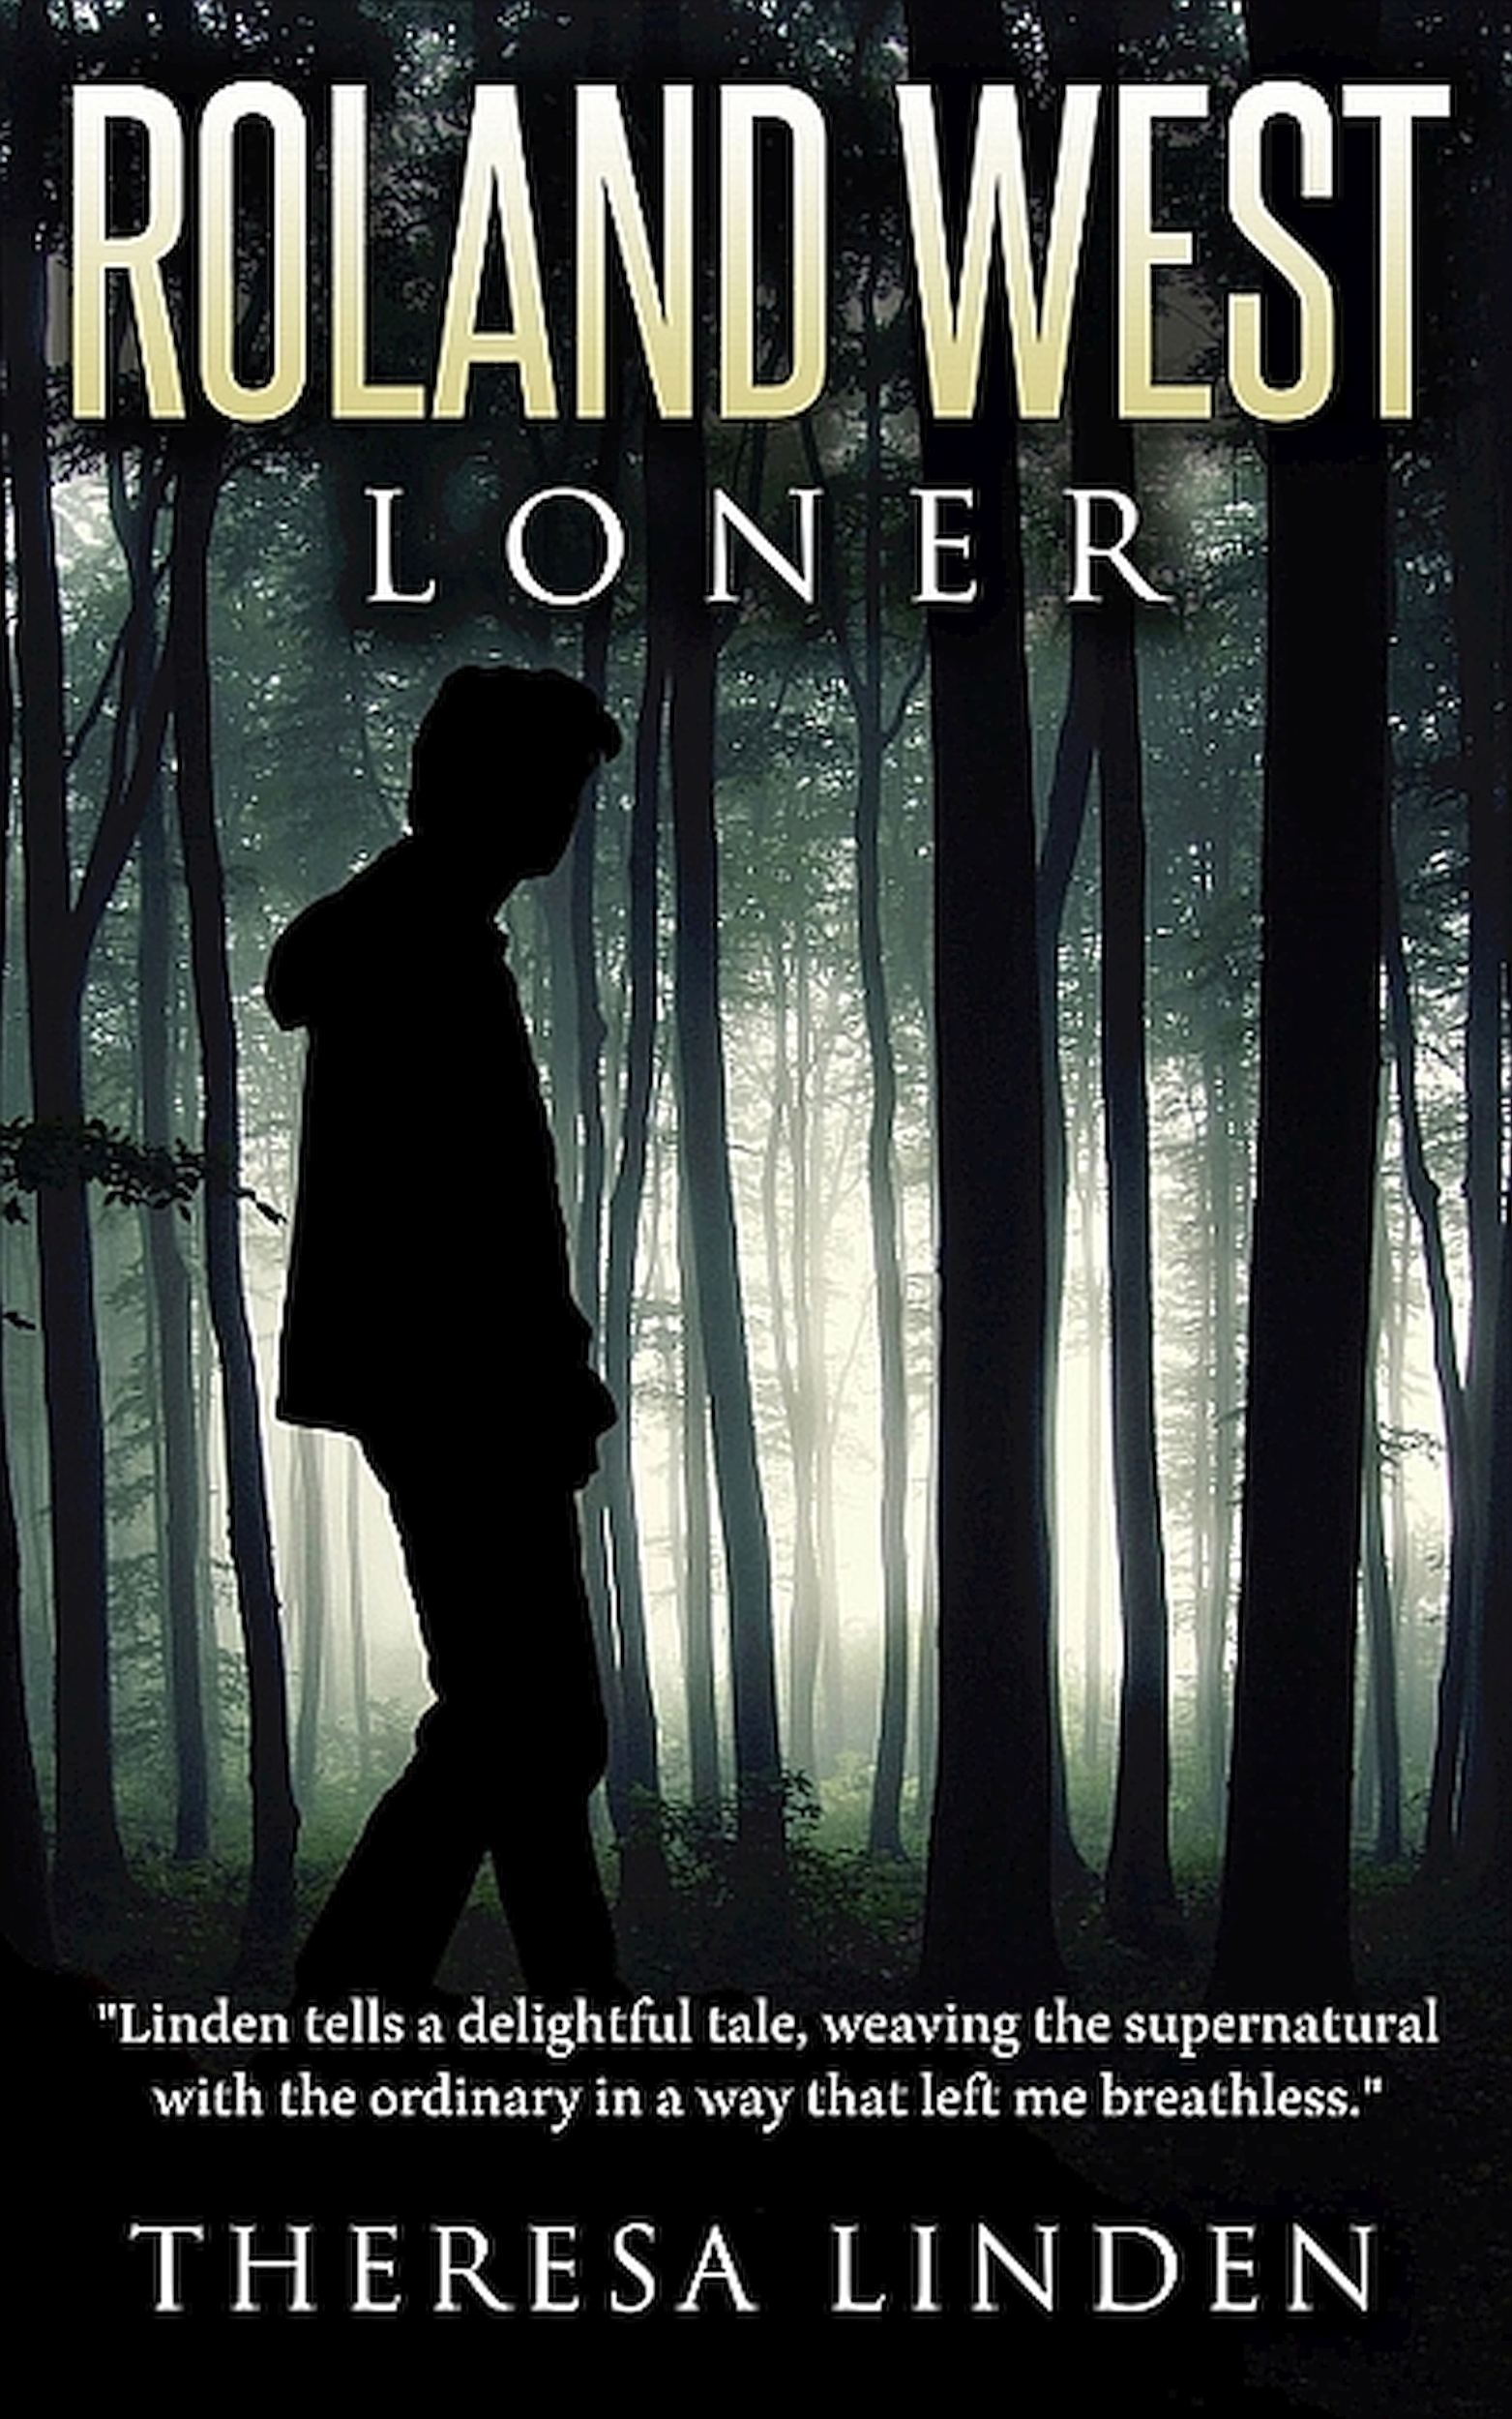 Roland West Loner by Theresa Linden